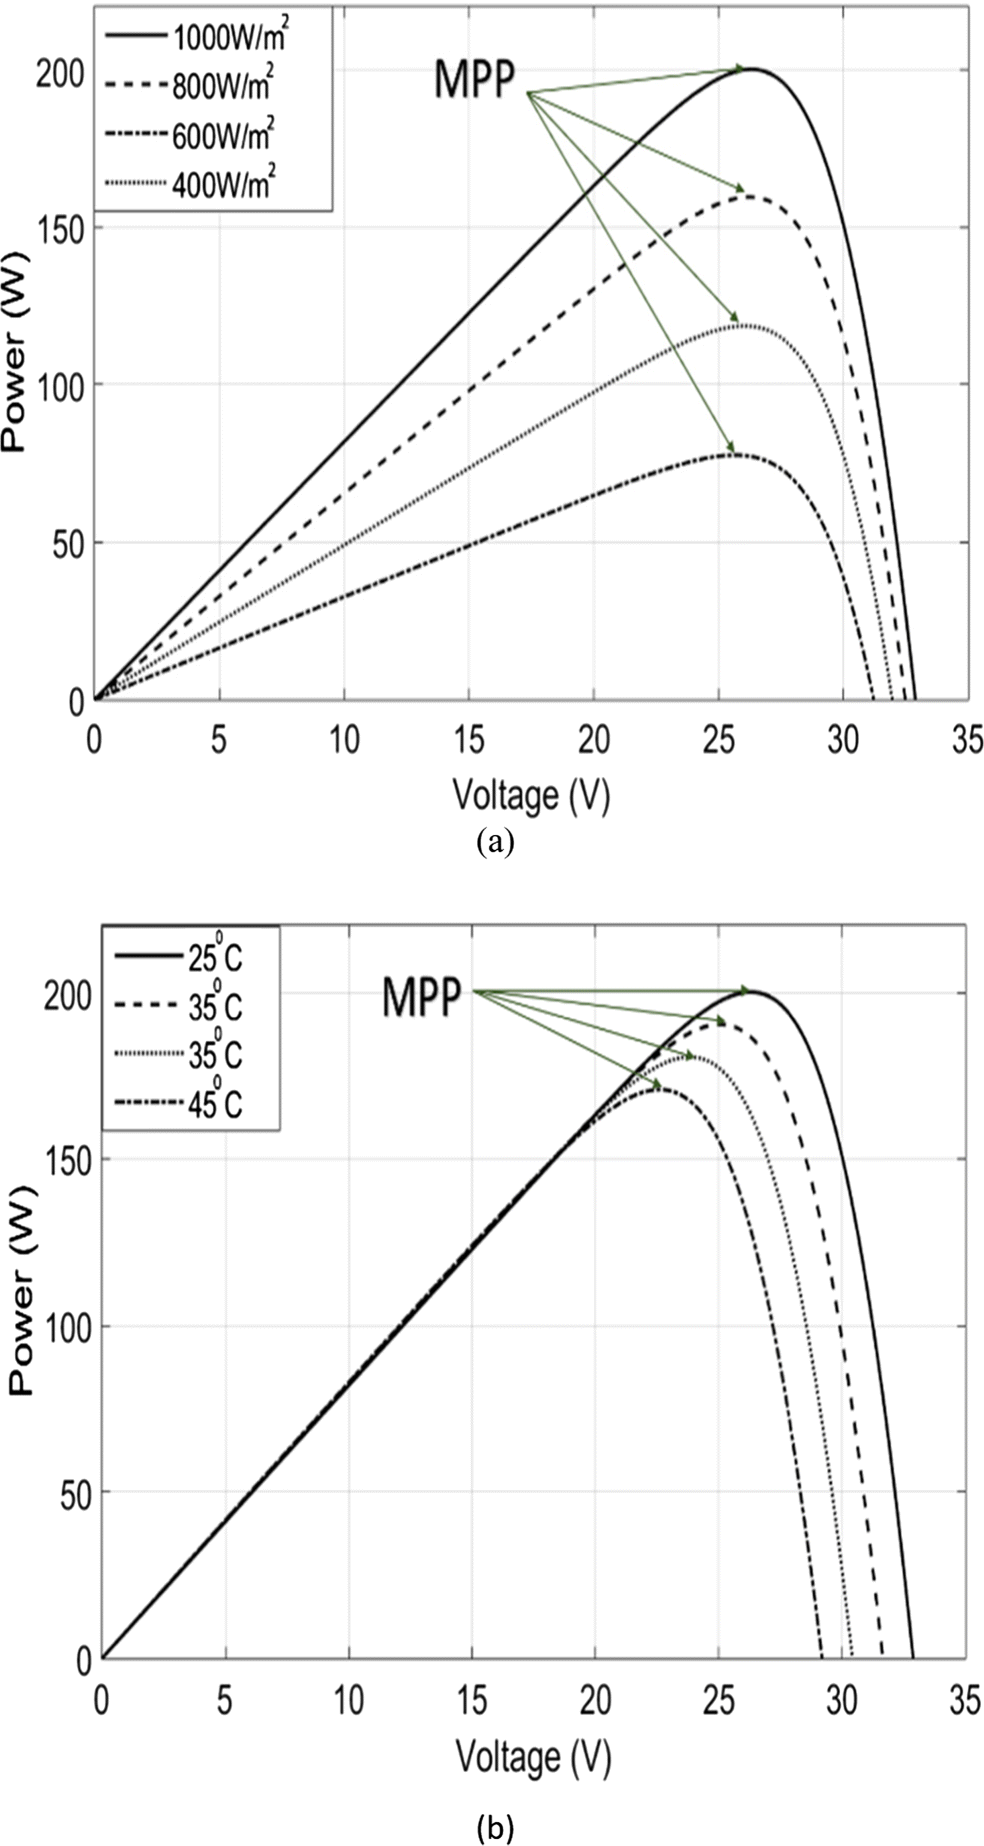 A New Maximum Power Point Tracking Based On Modified Firefly Controller 145v Open Circuit Voltage Mppt Solar Charge Image In Window